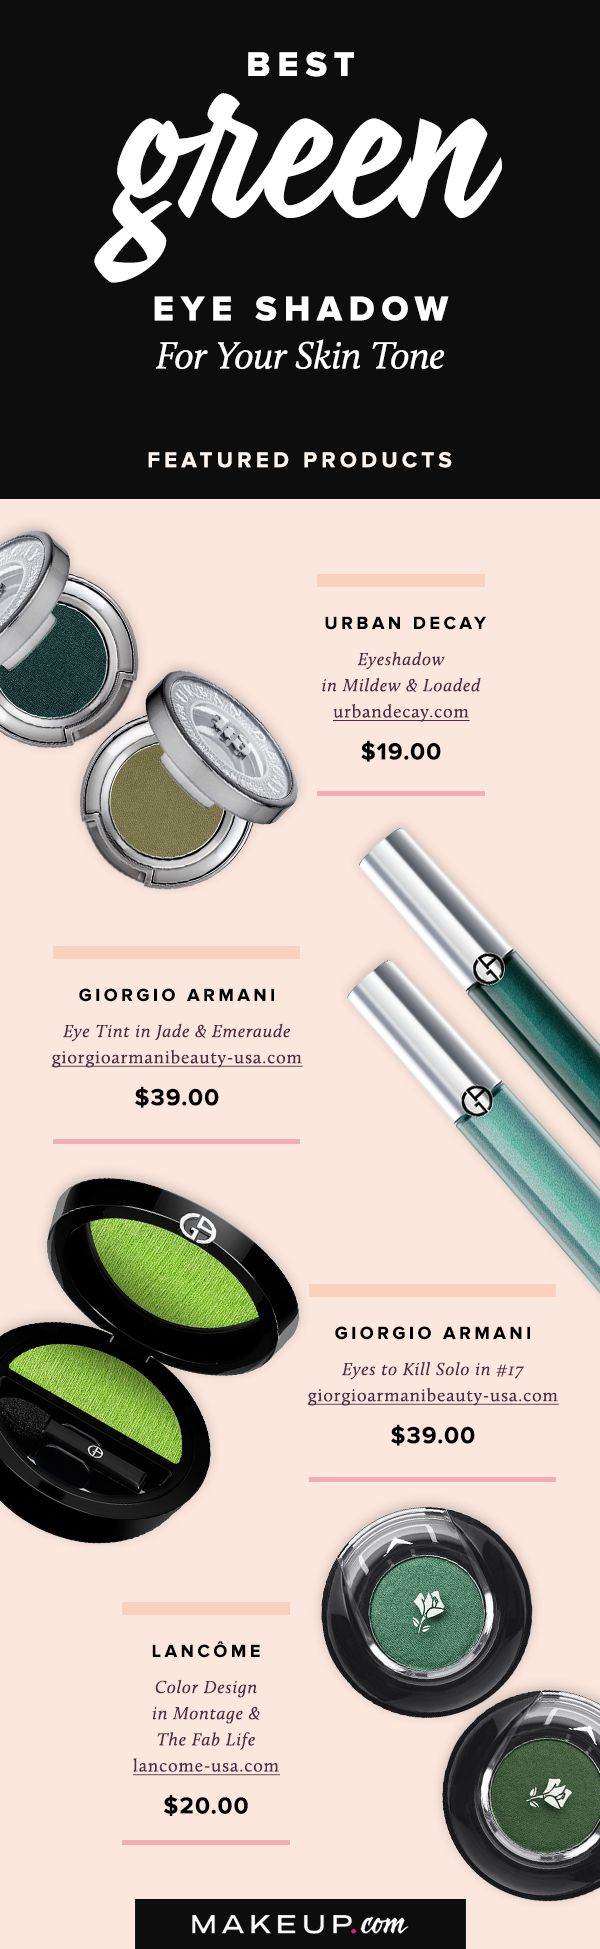 When you think about eye shadow, green may not instantly come to mind. We'll show you why that should change thanks to these pretty green eye shadows that look great on fair, medium and dark skin tones.